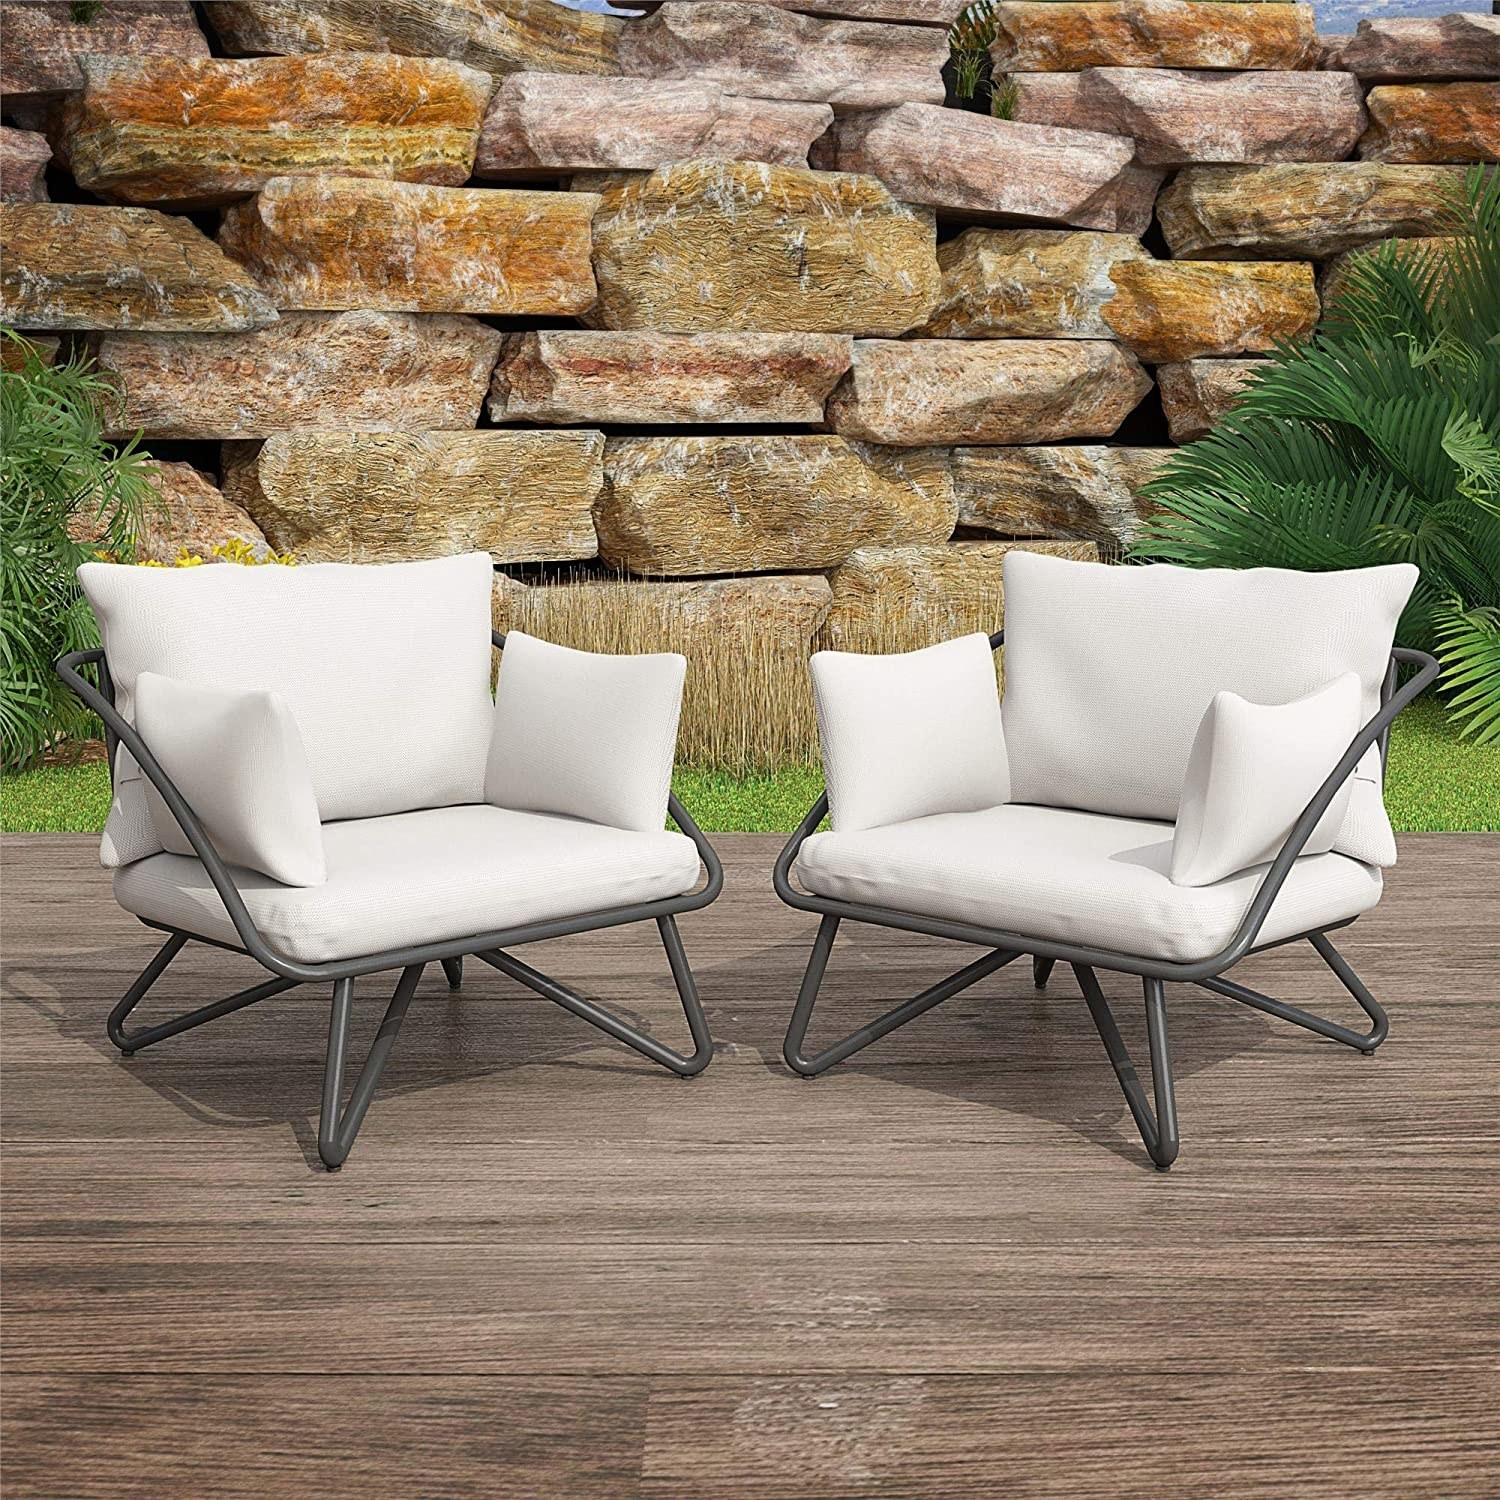 the cozy chairs with charcoal fixtures and white cushions